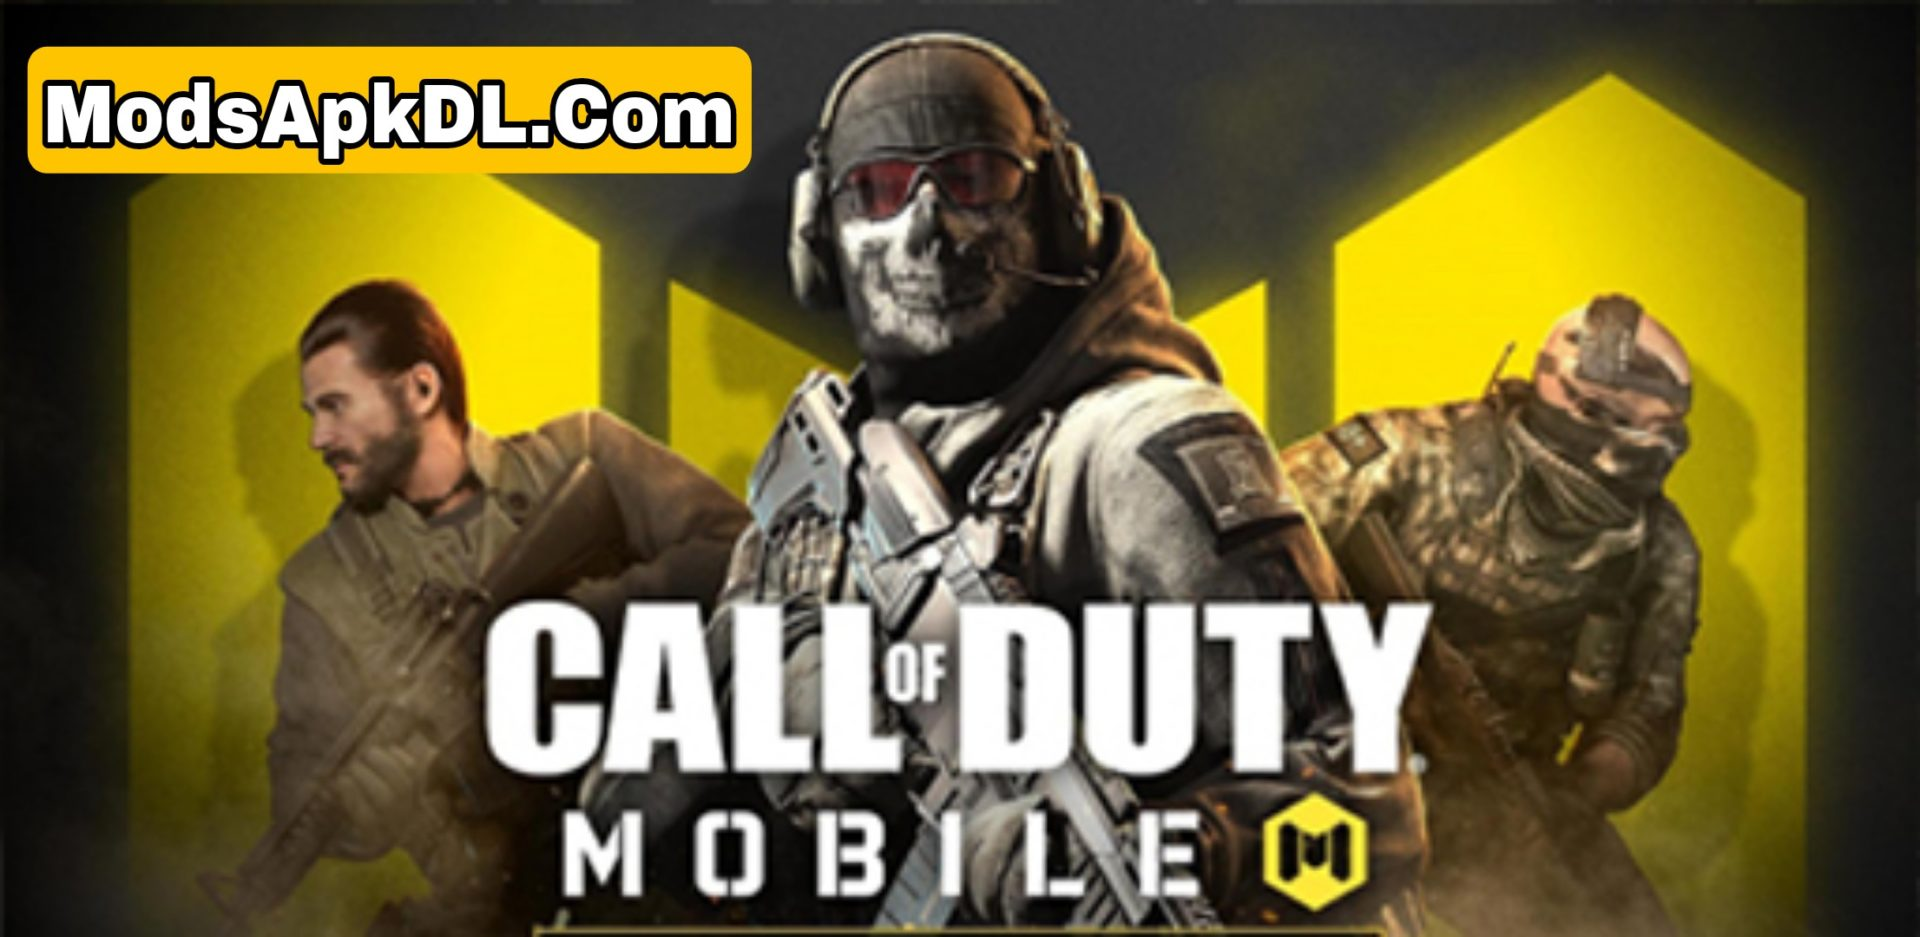 Call of Duty Mobile Mod APK v1.0.24 Download (Unlimited Money)